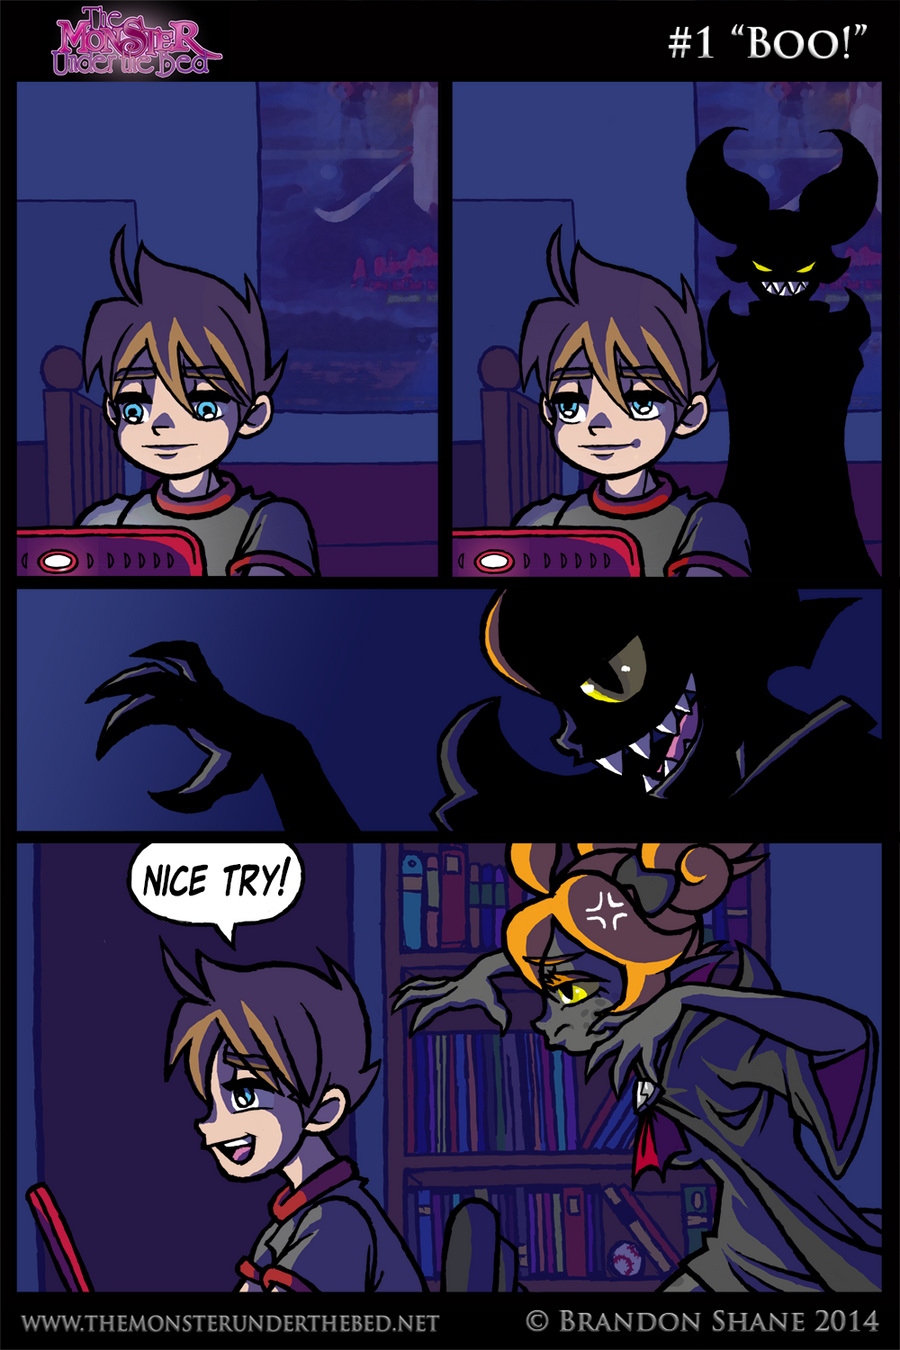 The Monster Under the Bed - 001 - Boo! by JiveGuru on